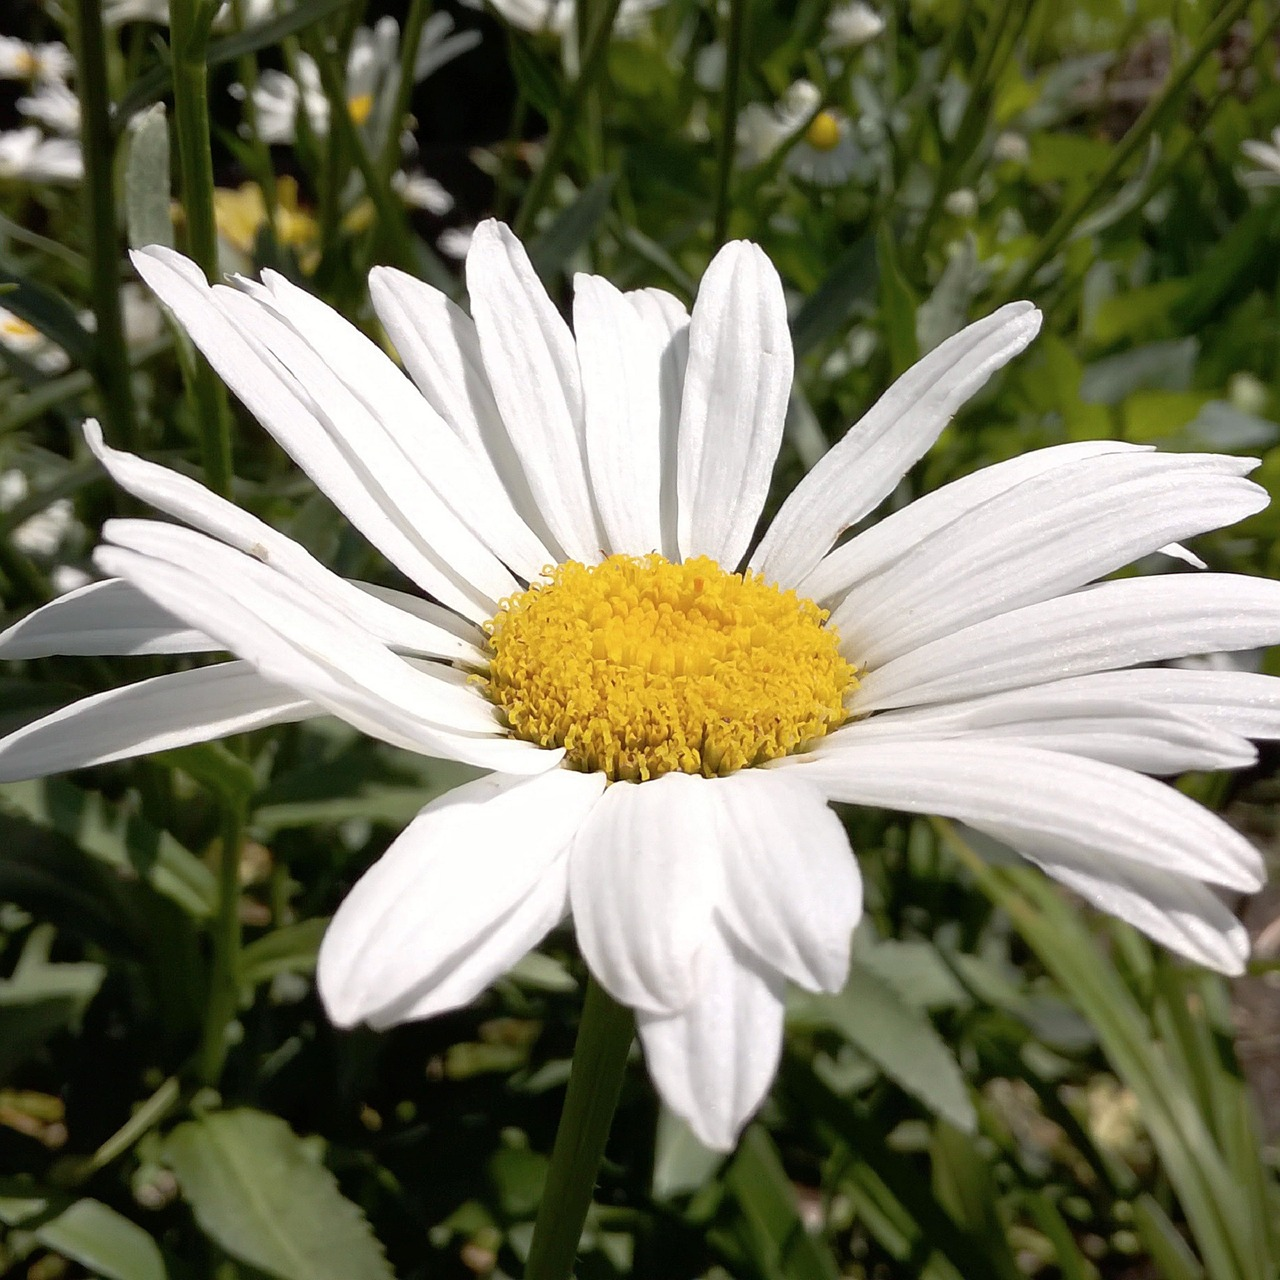 white daisy,pretty white daisy,fresh white daisy,natural white daisy,bright white daisy,free pictures, free photos, free images, royalty free, free illustrations, public domain